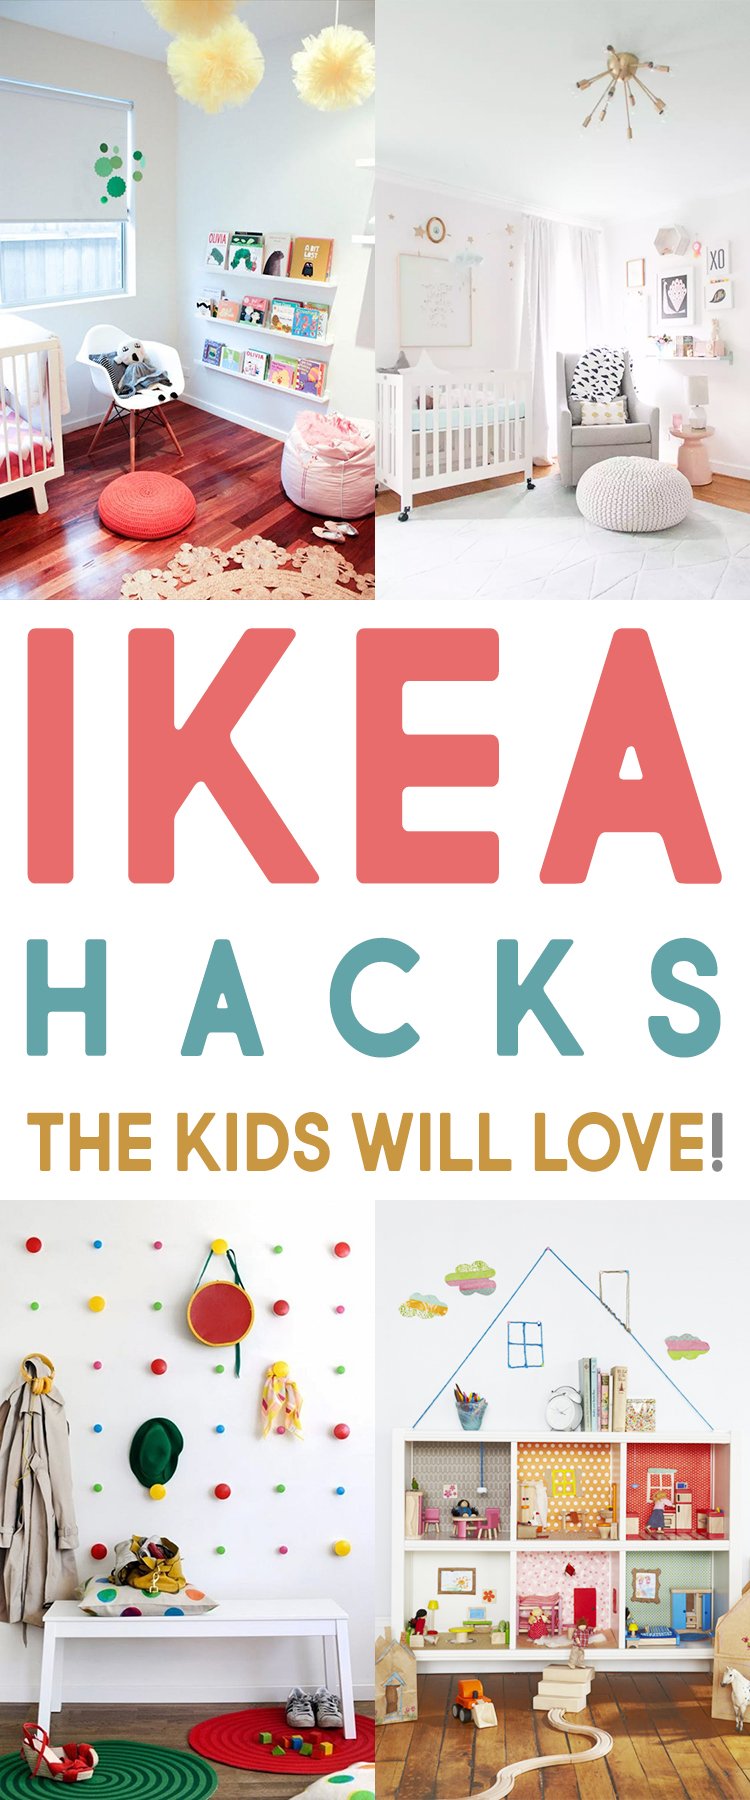 IKEA Hacks the Kids Will Love